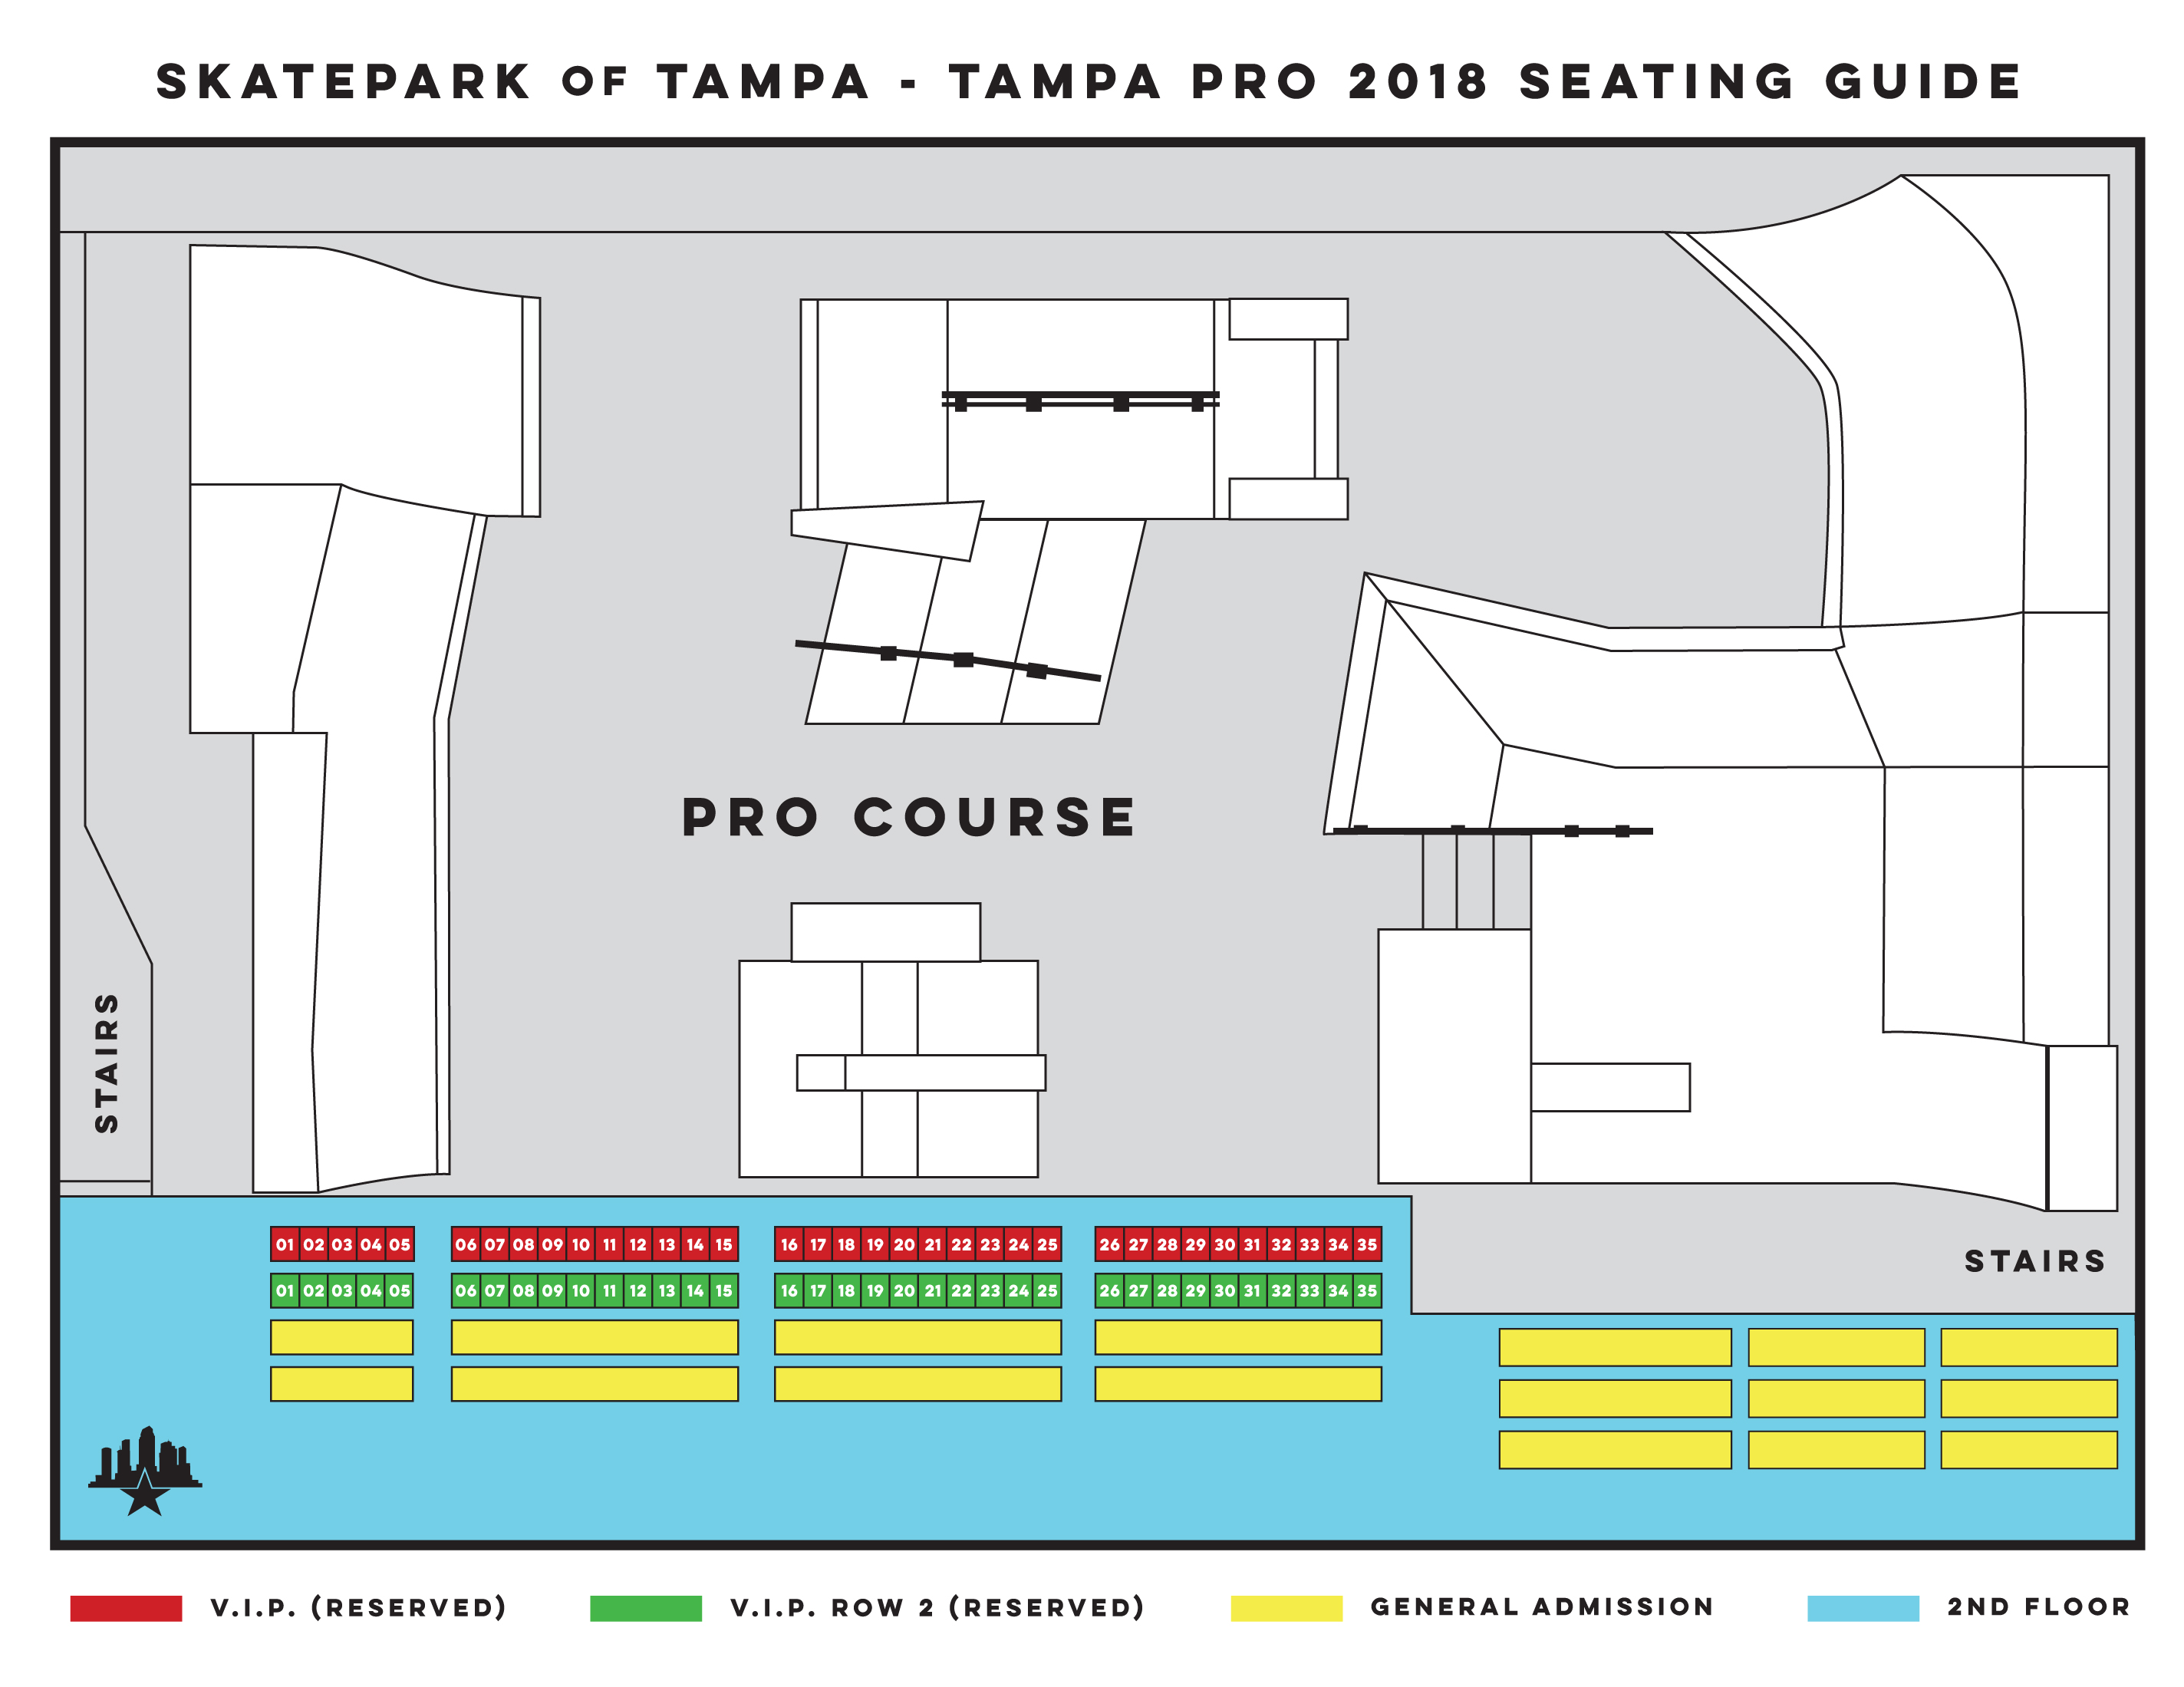 Tampa Pro 2018 Ticket Guide Article At Skatepark Of Tampa